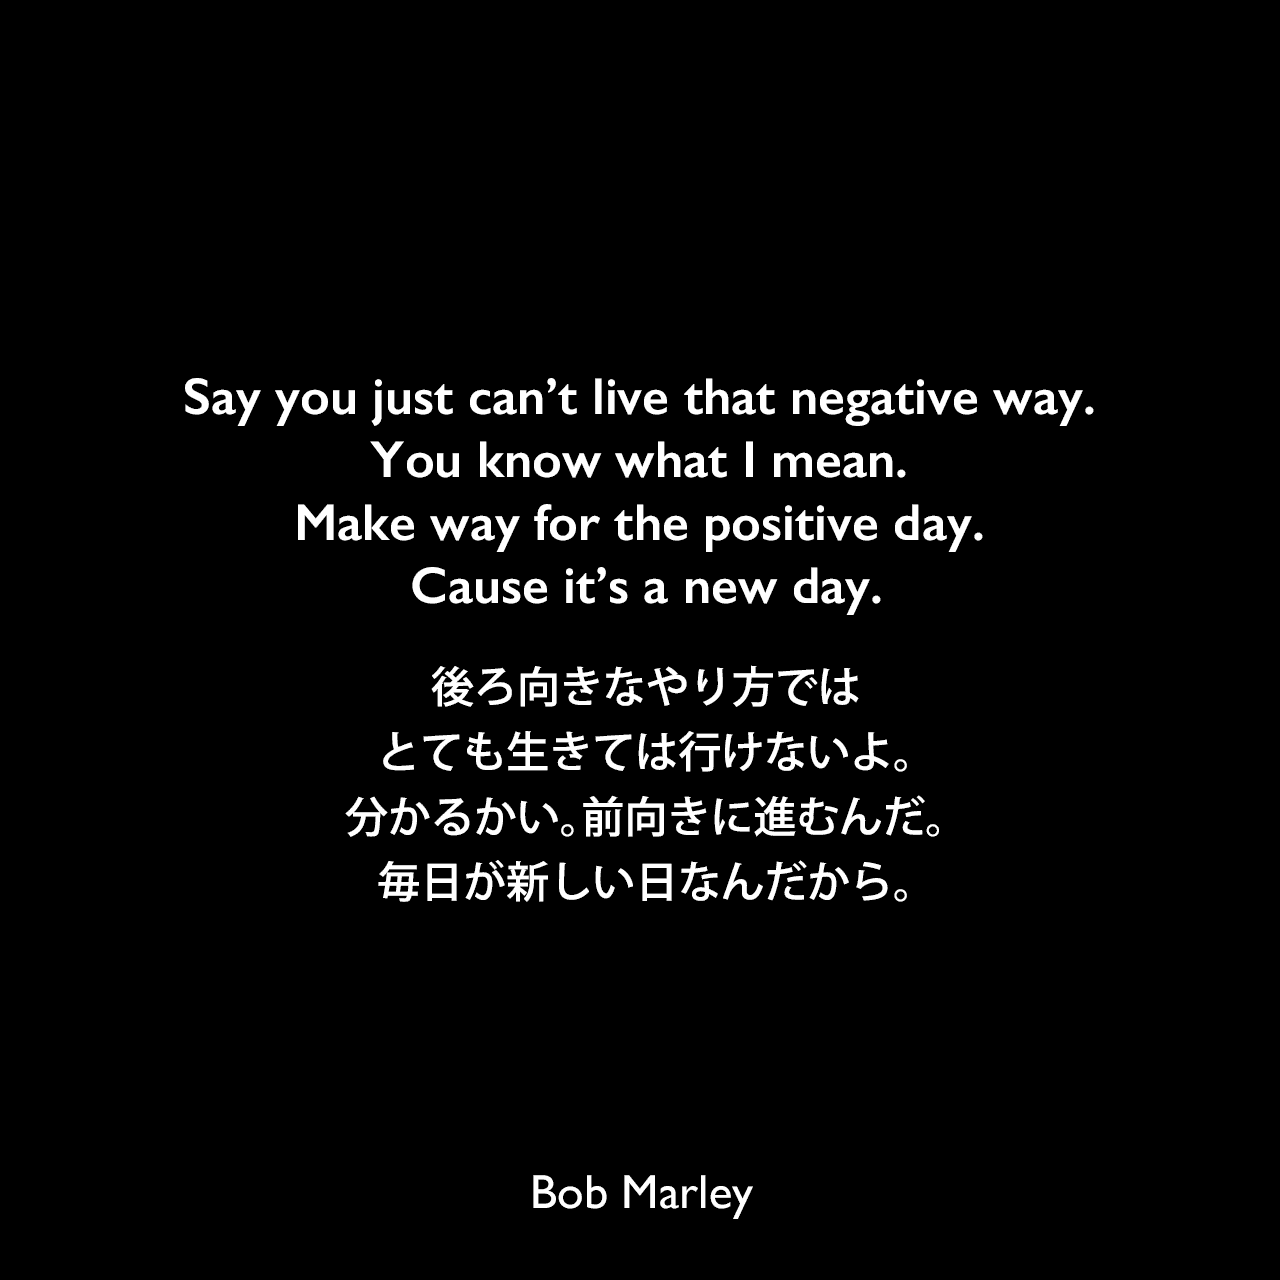 Say you just can't live that negative way. You know what I mean. Make way for the positive day. Cause it's a new day.後ろ向きなやり方では、とても生きては行けないよ。分かるかい。前向きに進むんだ。毎日が新しい日なんだから。Bob Marley